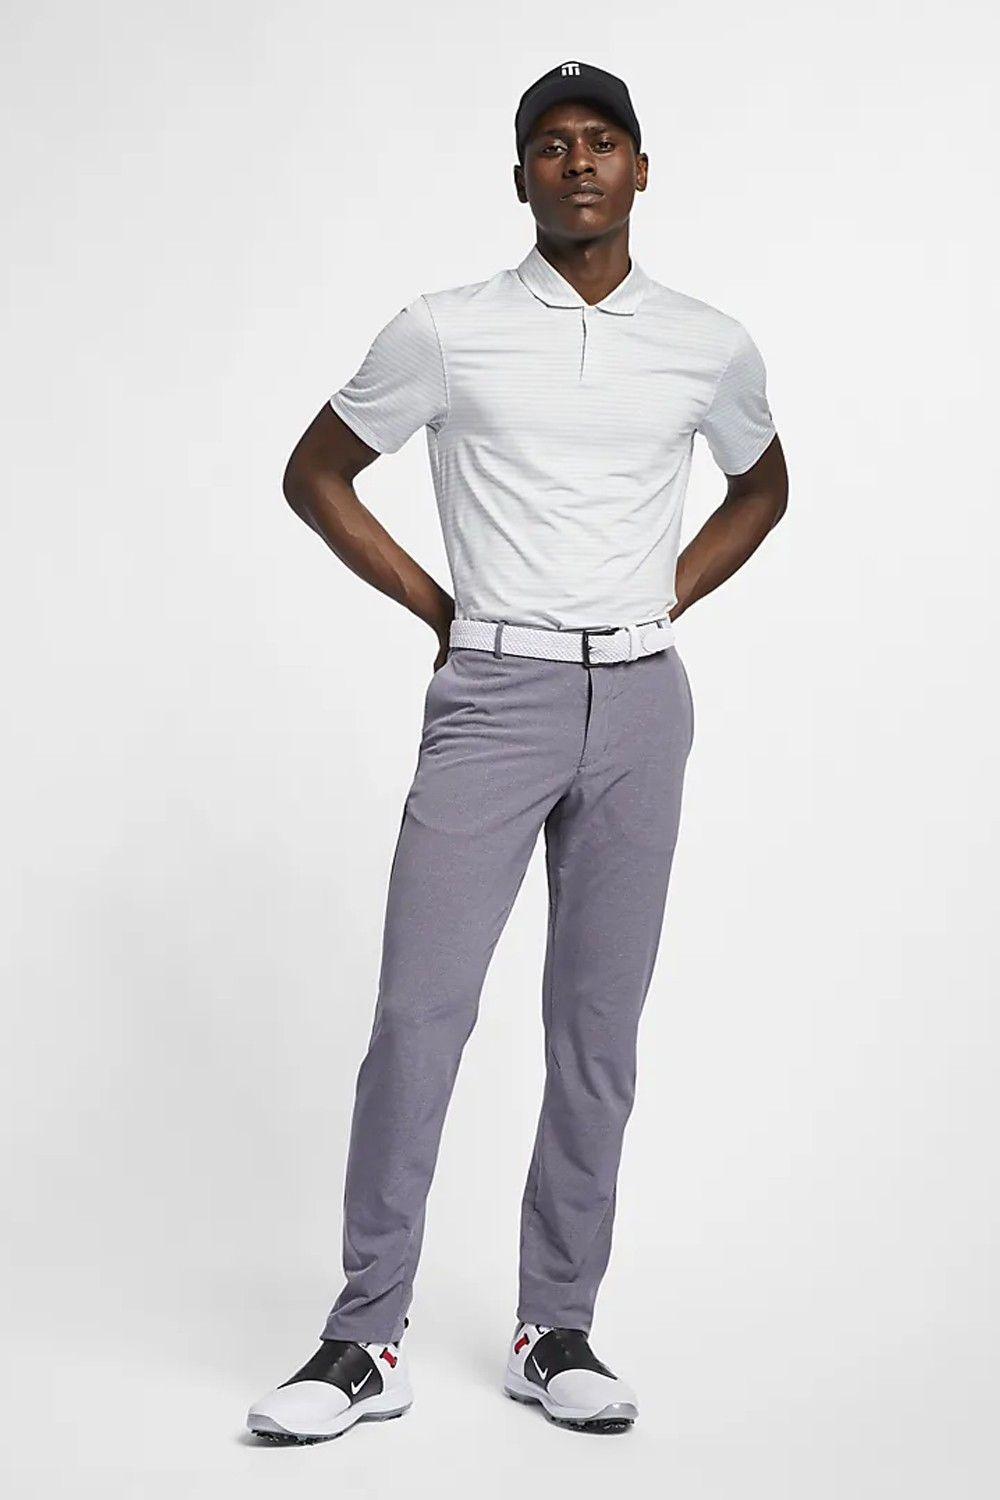 nike tiger woods golf shoes 2019